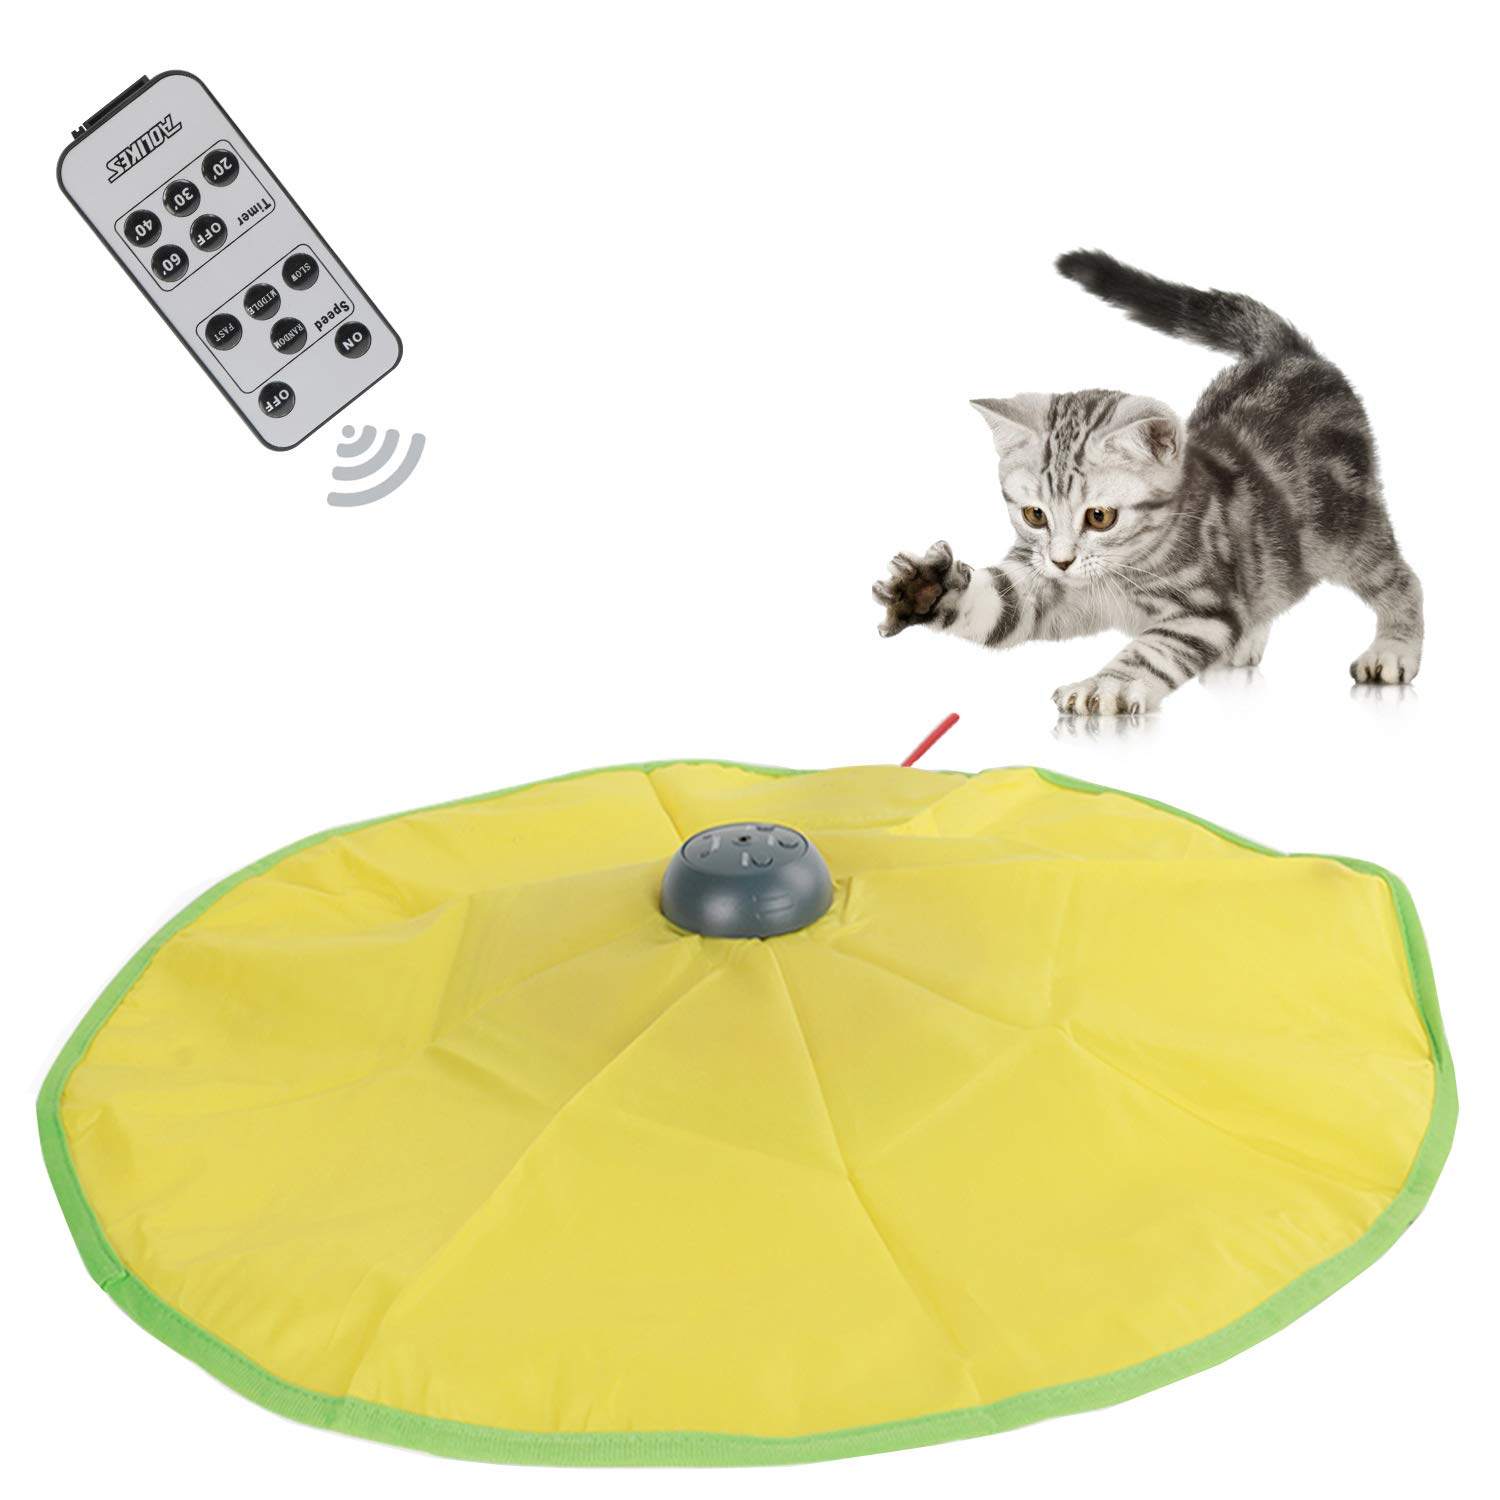 ACCTN Interactive Cat Toys, 5th Generation Durable Smart Pet Cat Toy with Wireless Remote Version V5 (V4 Version Cat Toys)